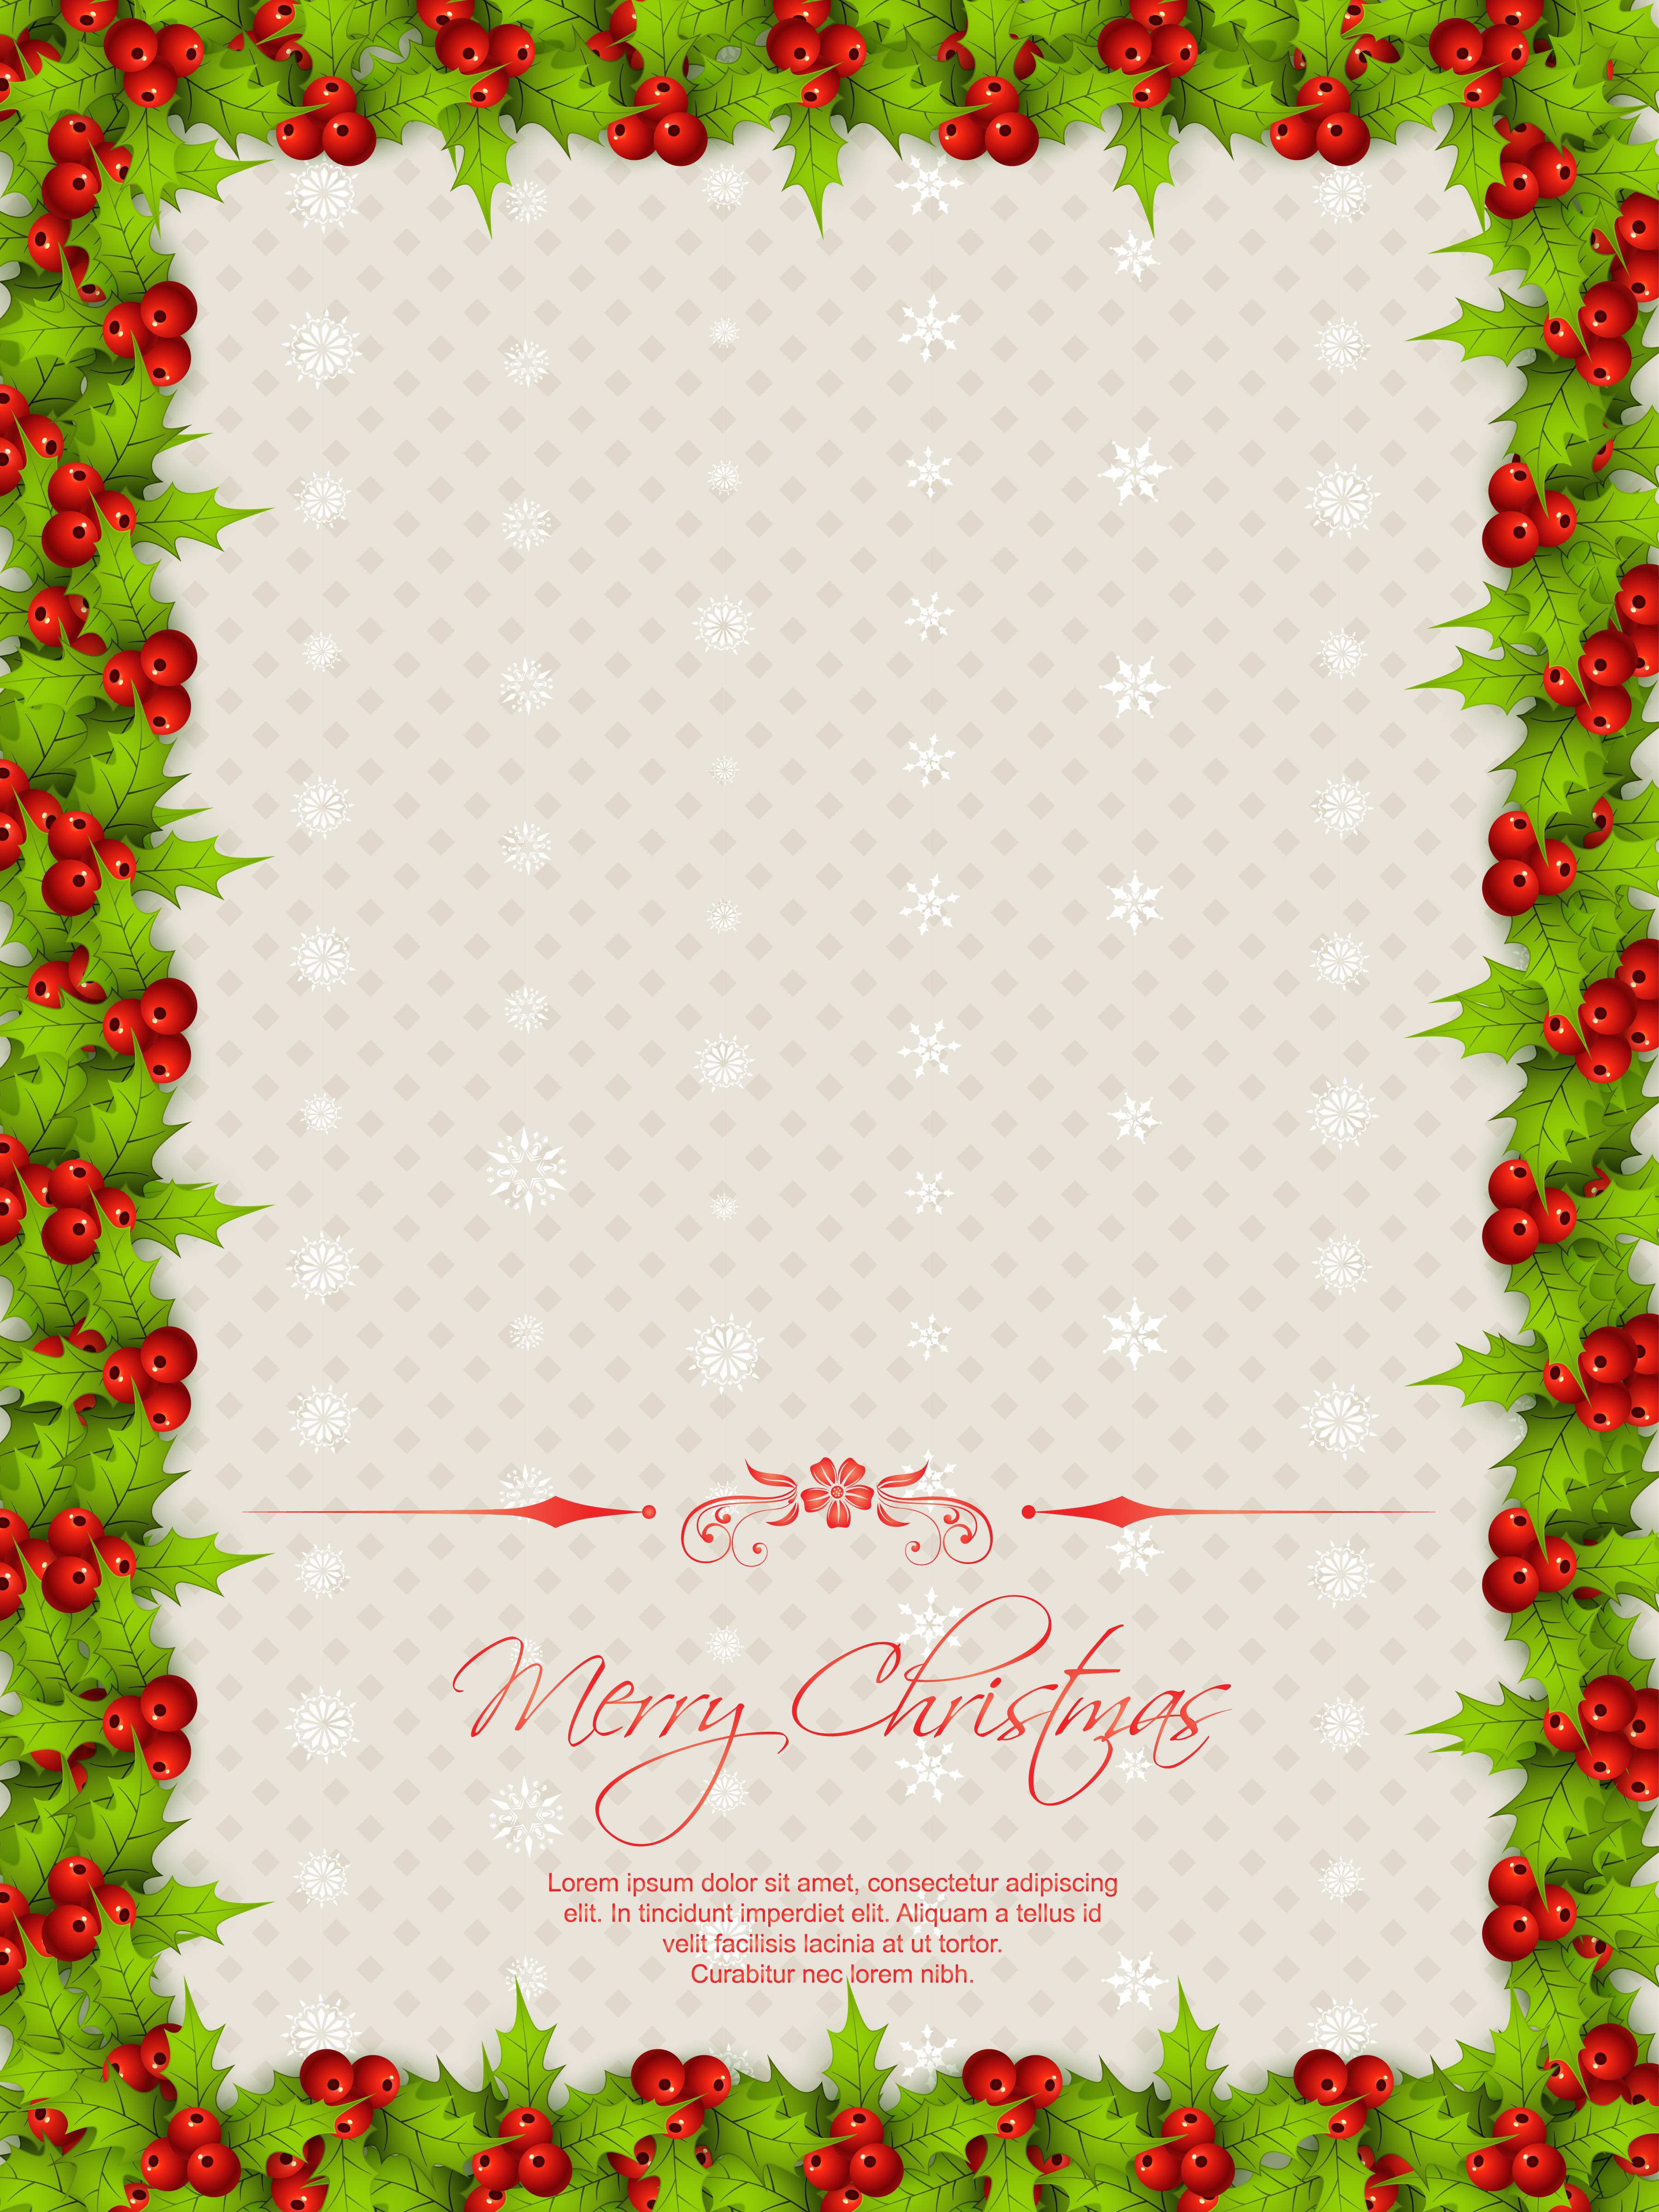 christmas border free vector art 10649 free downloads